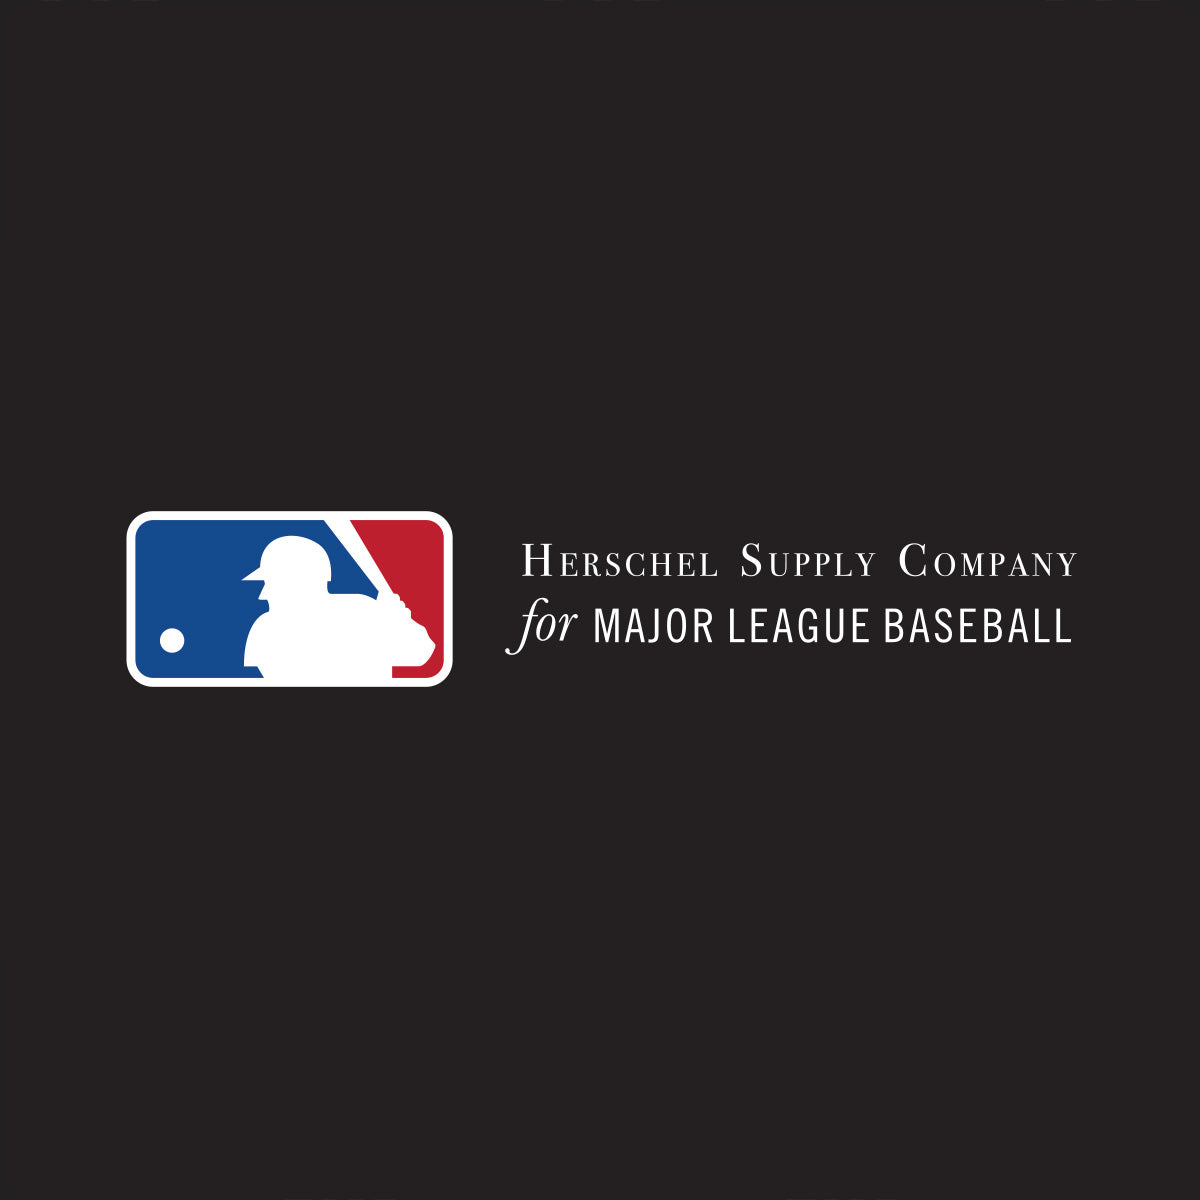 Herschel Supply Company for Major League Baseball